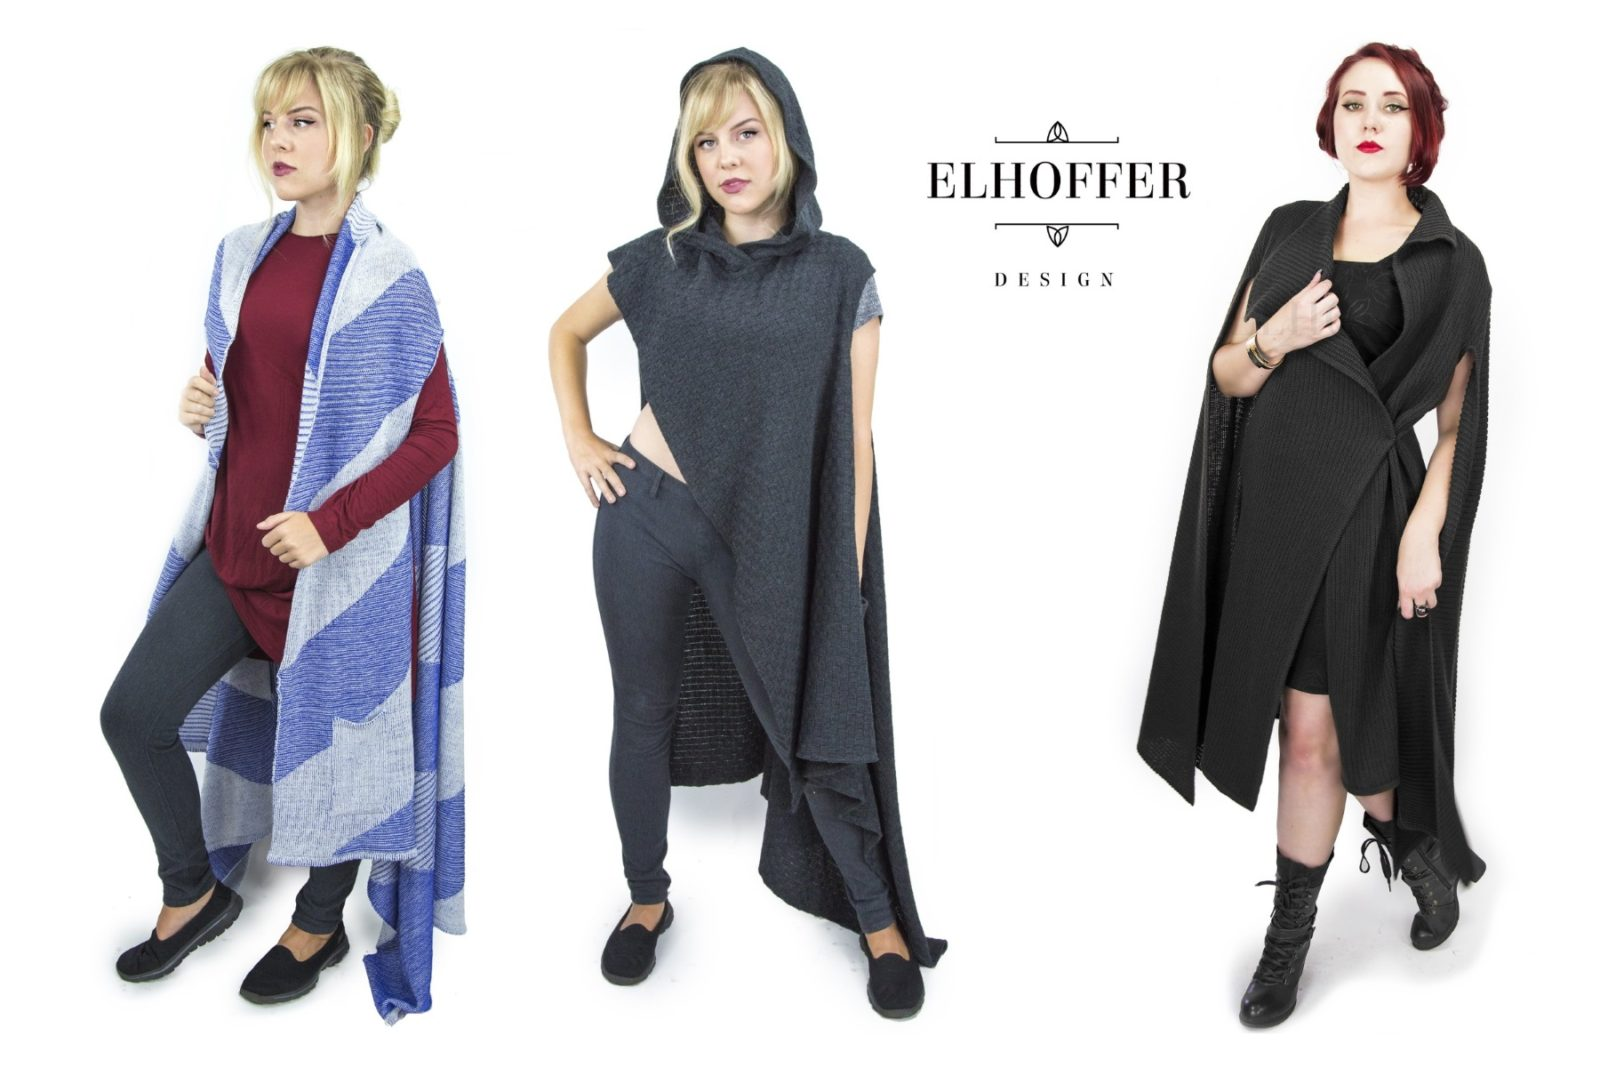 Interview with Elhoffer Design – Part 2